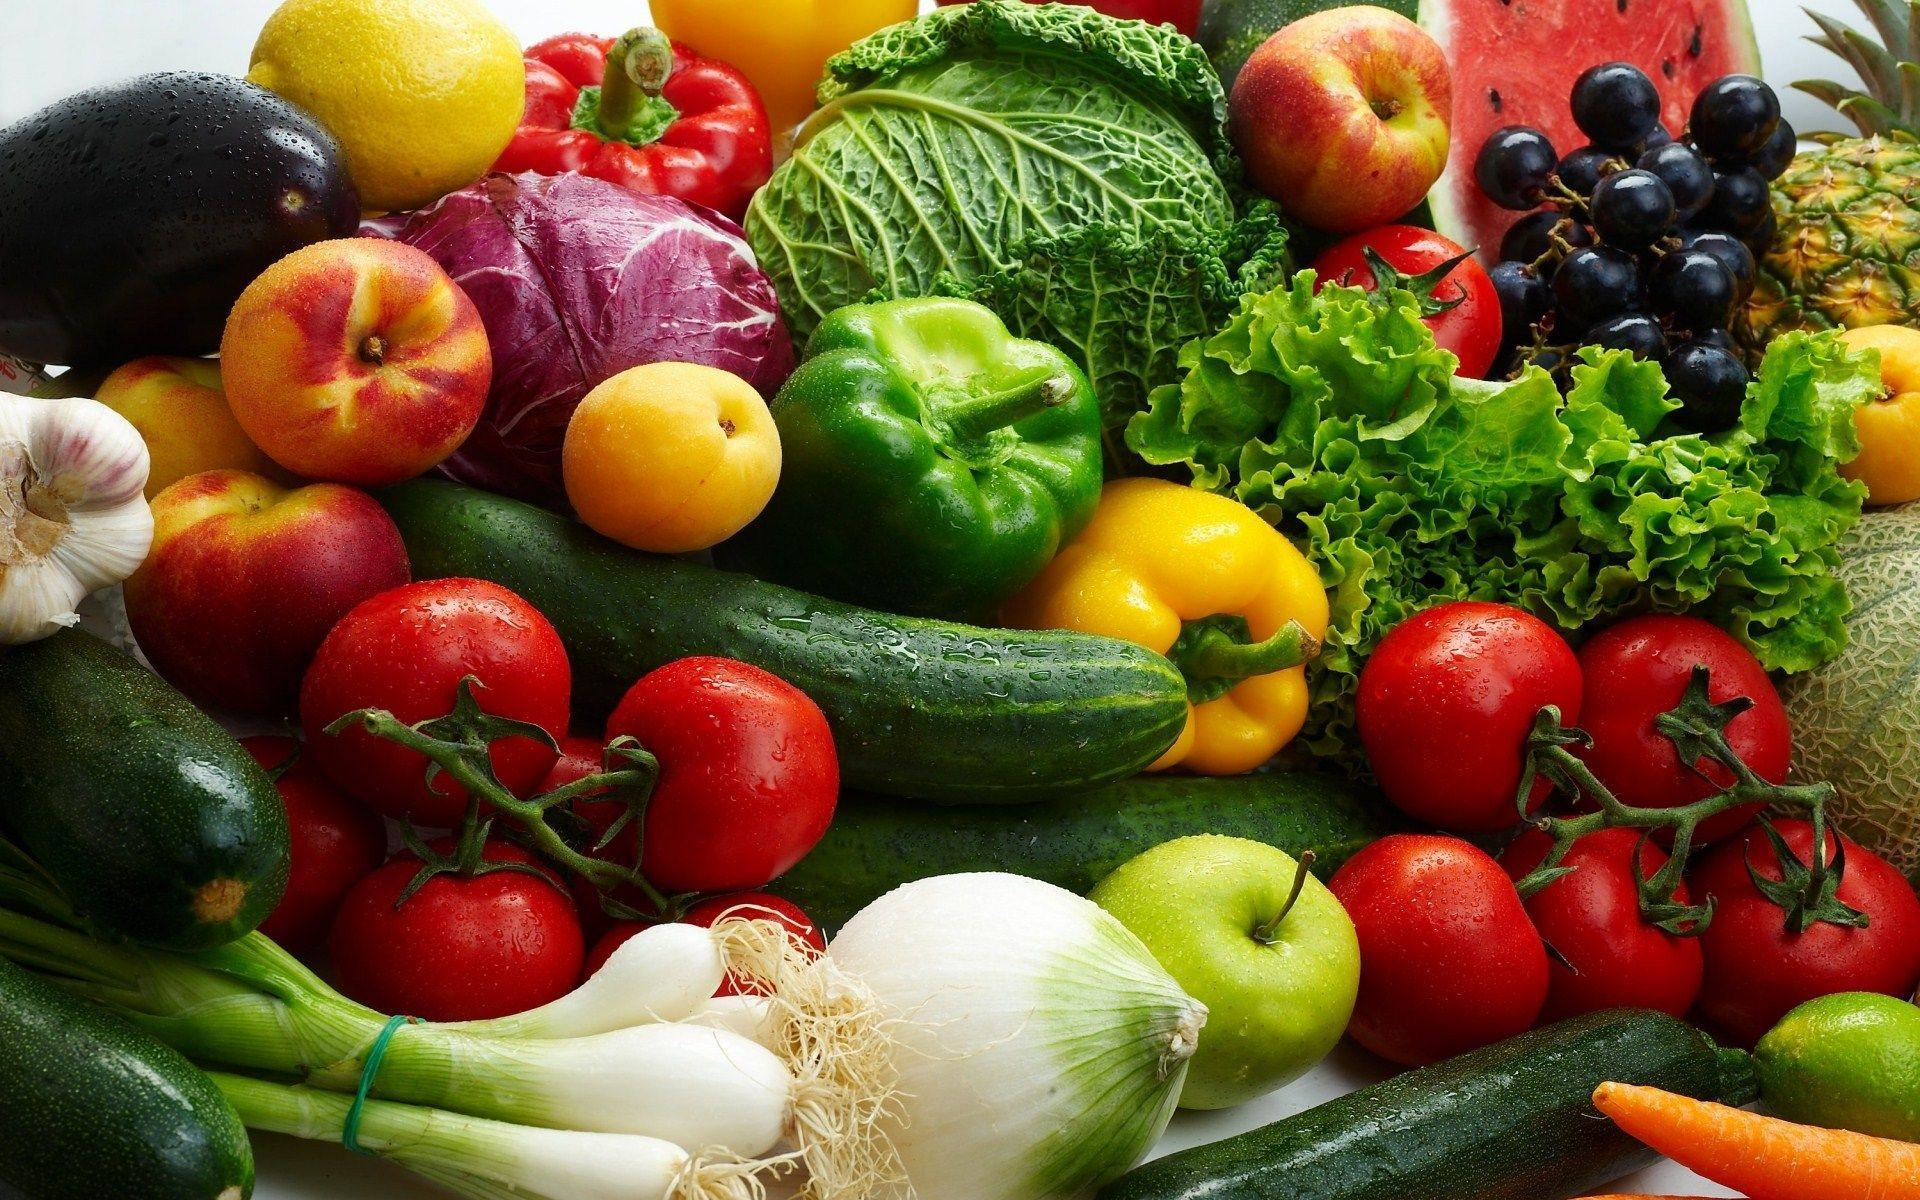 Healthy Images Free Pictures On Greepx